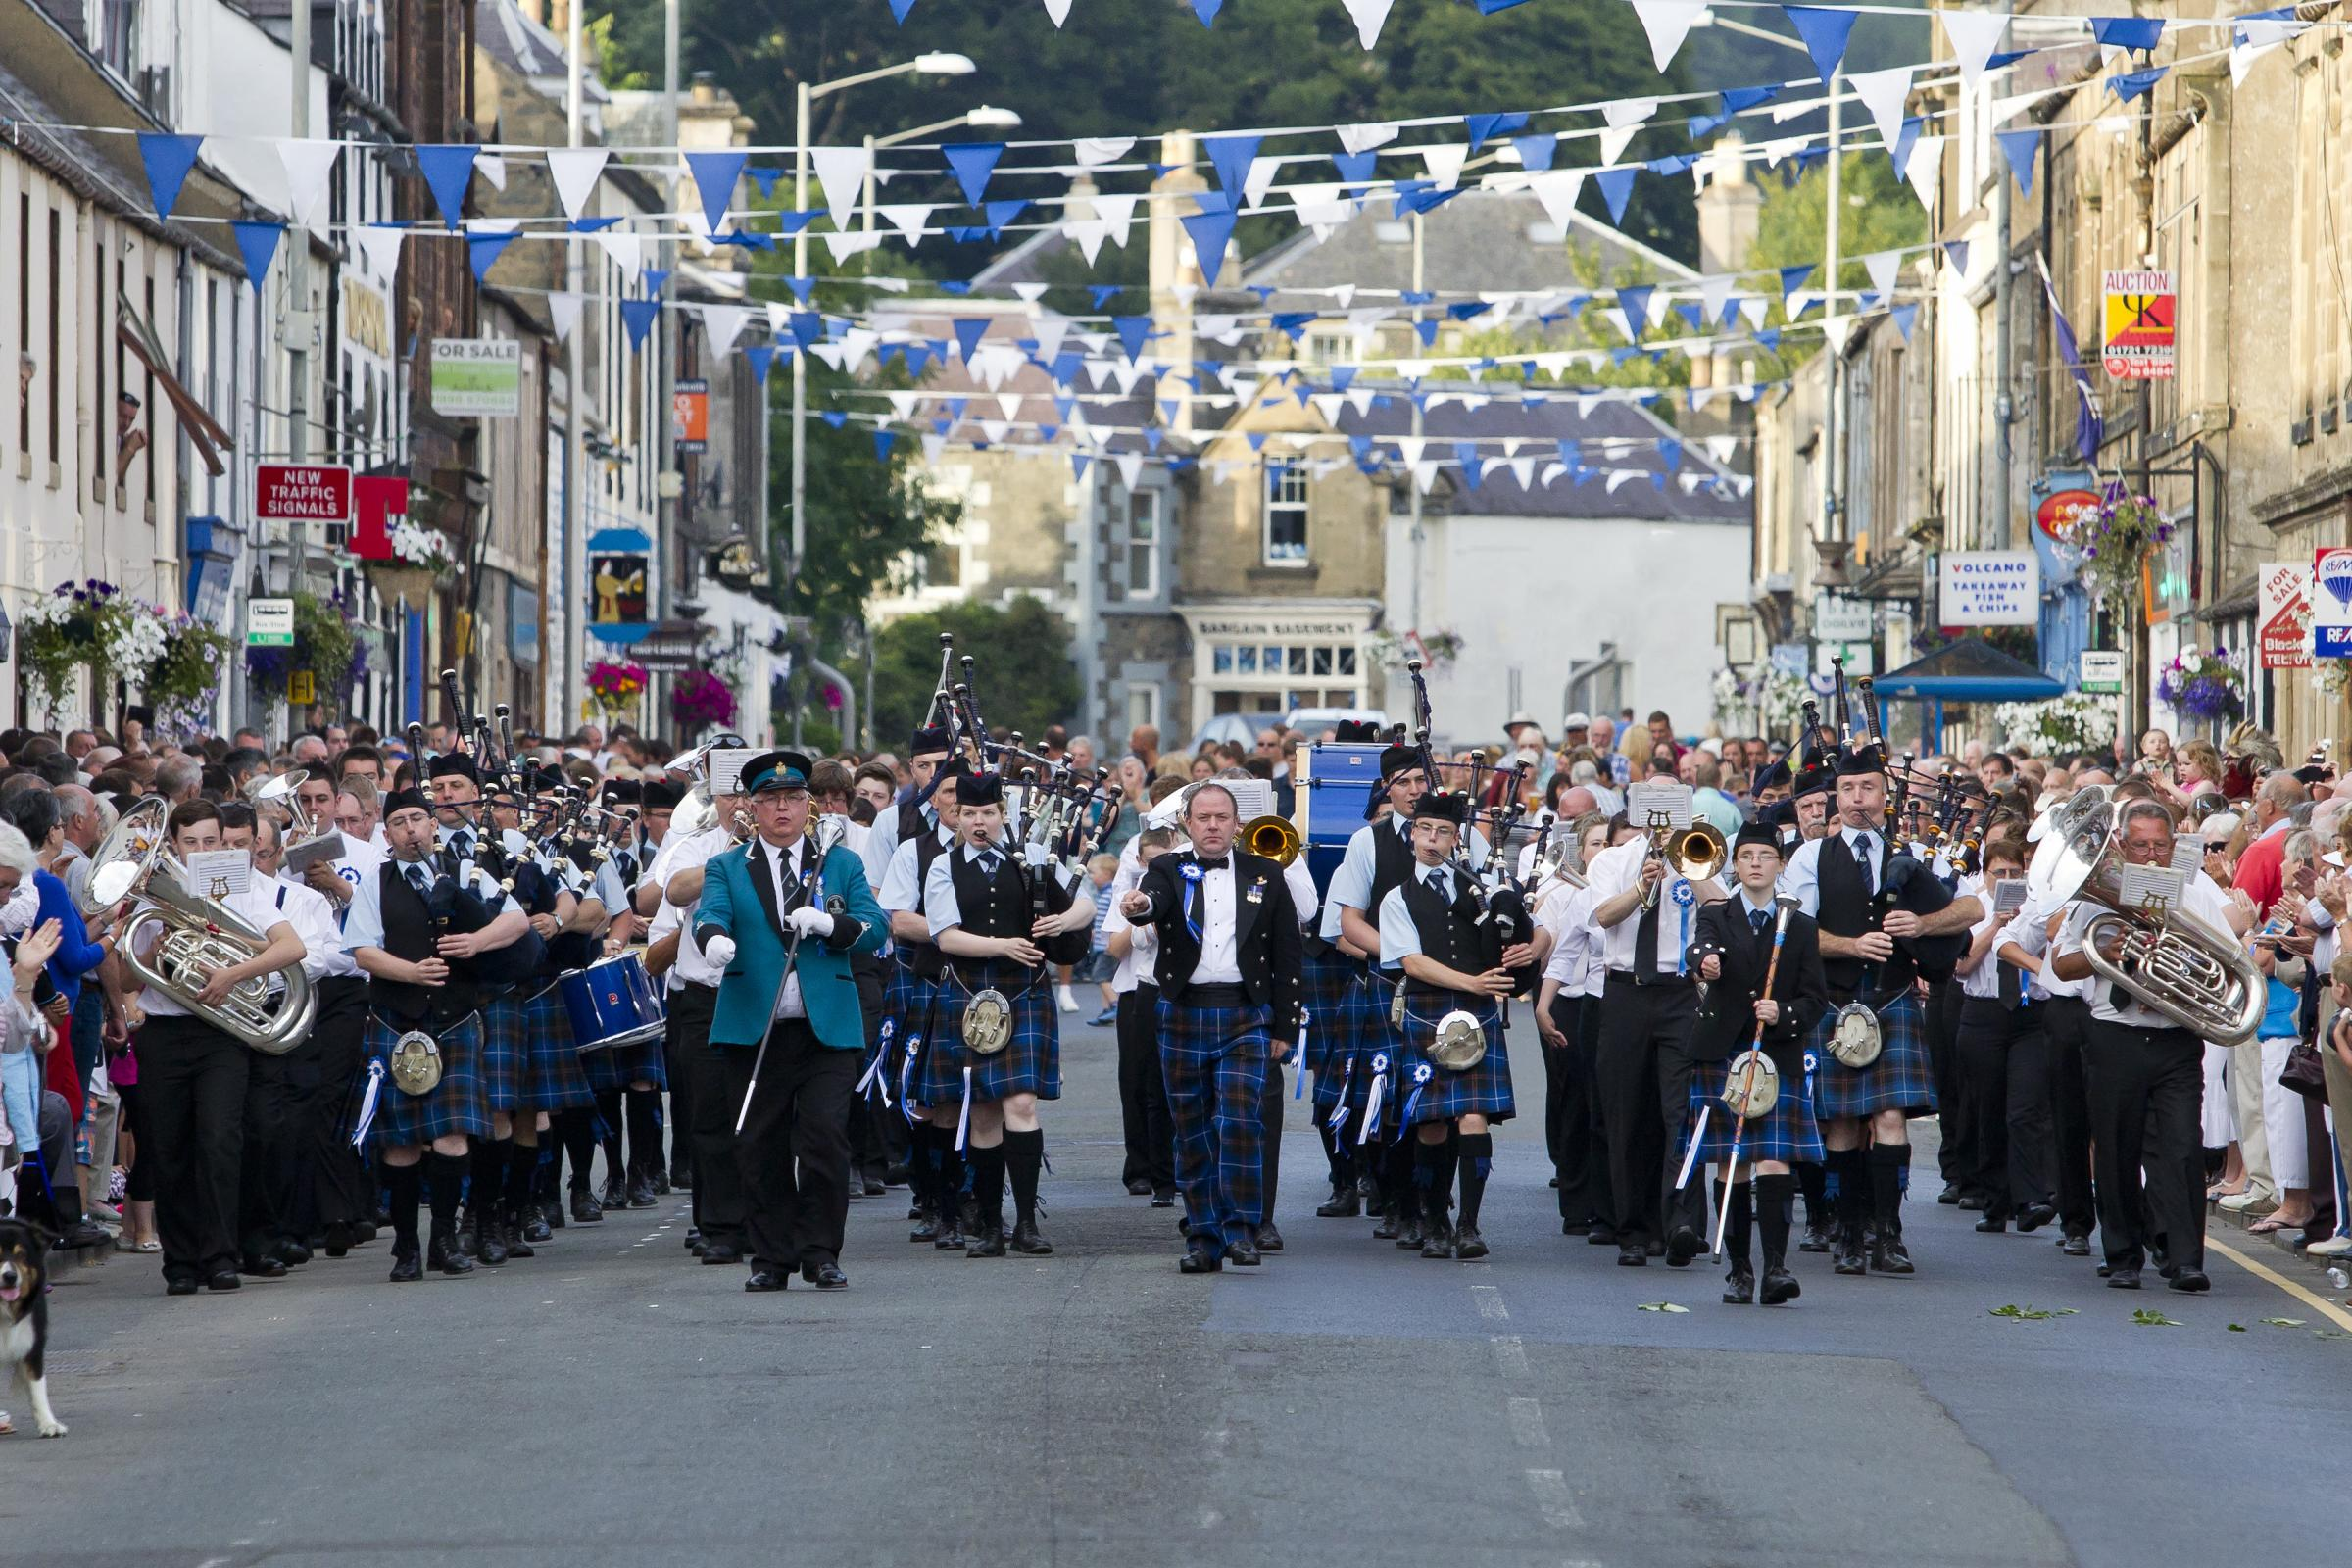 St. Ronan's Silver Band and Innerleithen Pipe Band on parade.